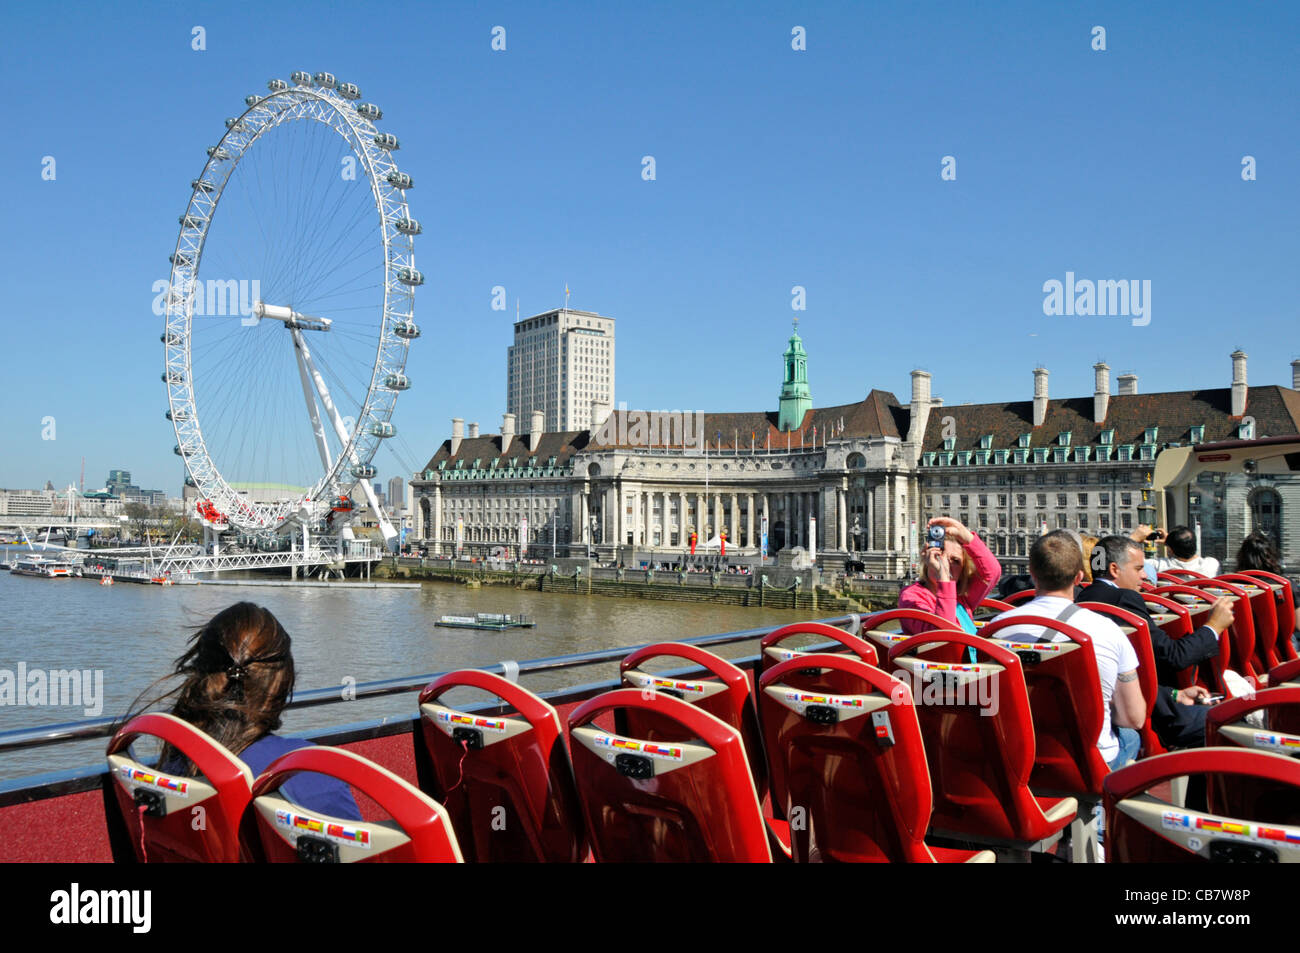 Tourists on open top sightseeing bus crossing Westminster Bridge with views of River Thames and the London Eye - Stock Image